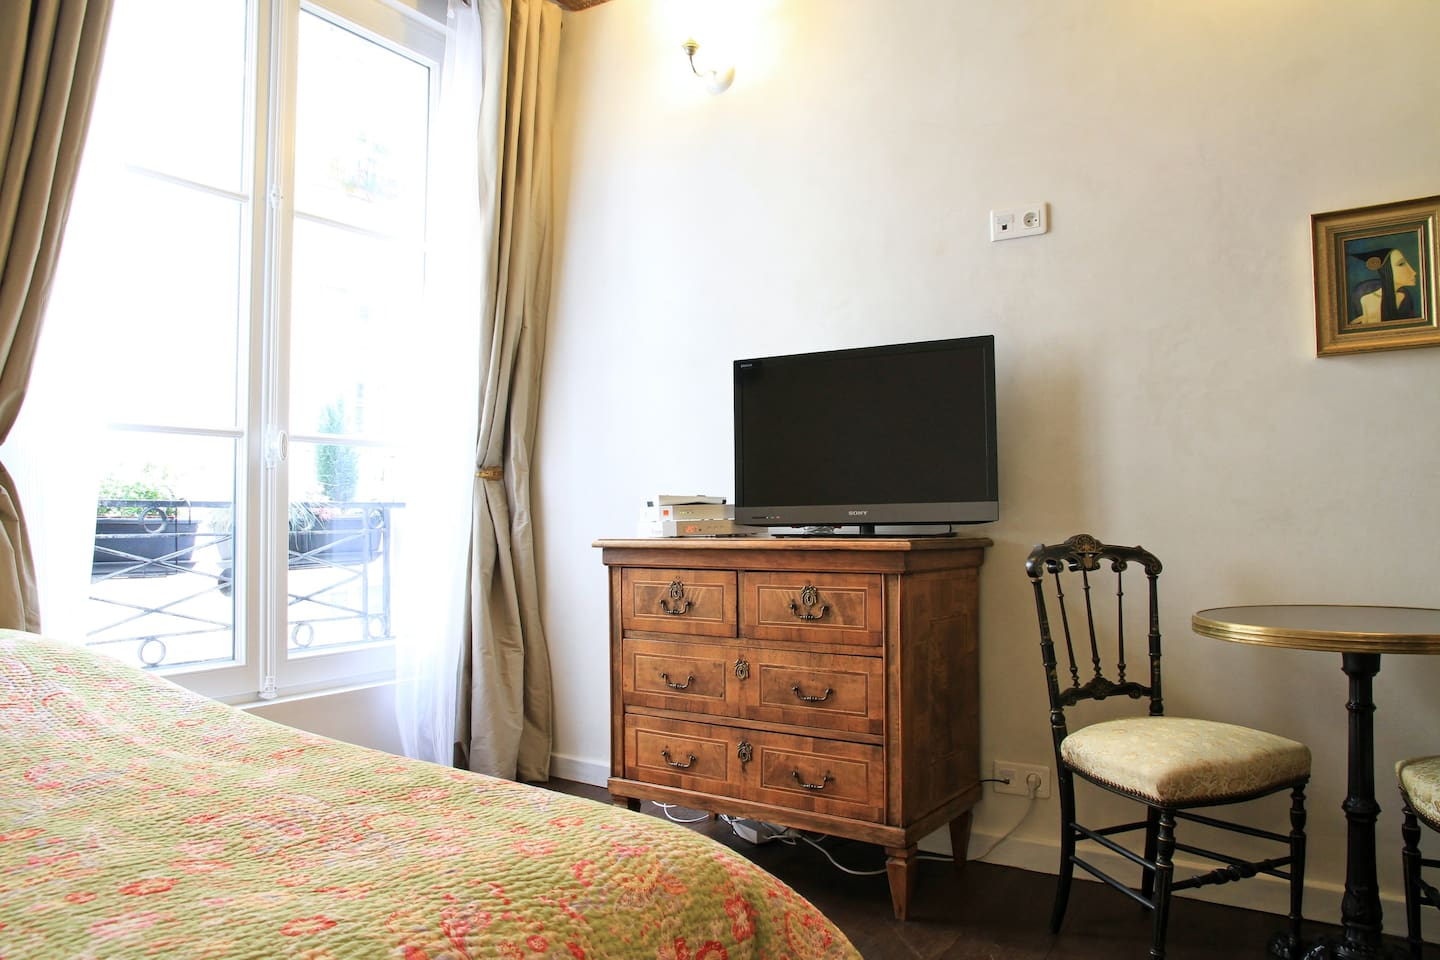 In the wardrobe, you will find Paris maps and guides, instructions about how to use the appliances, Restaurants informations, the airdryer